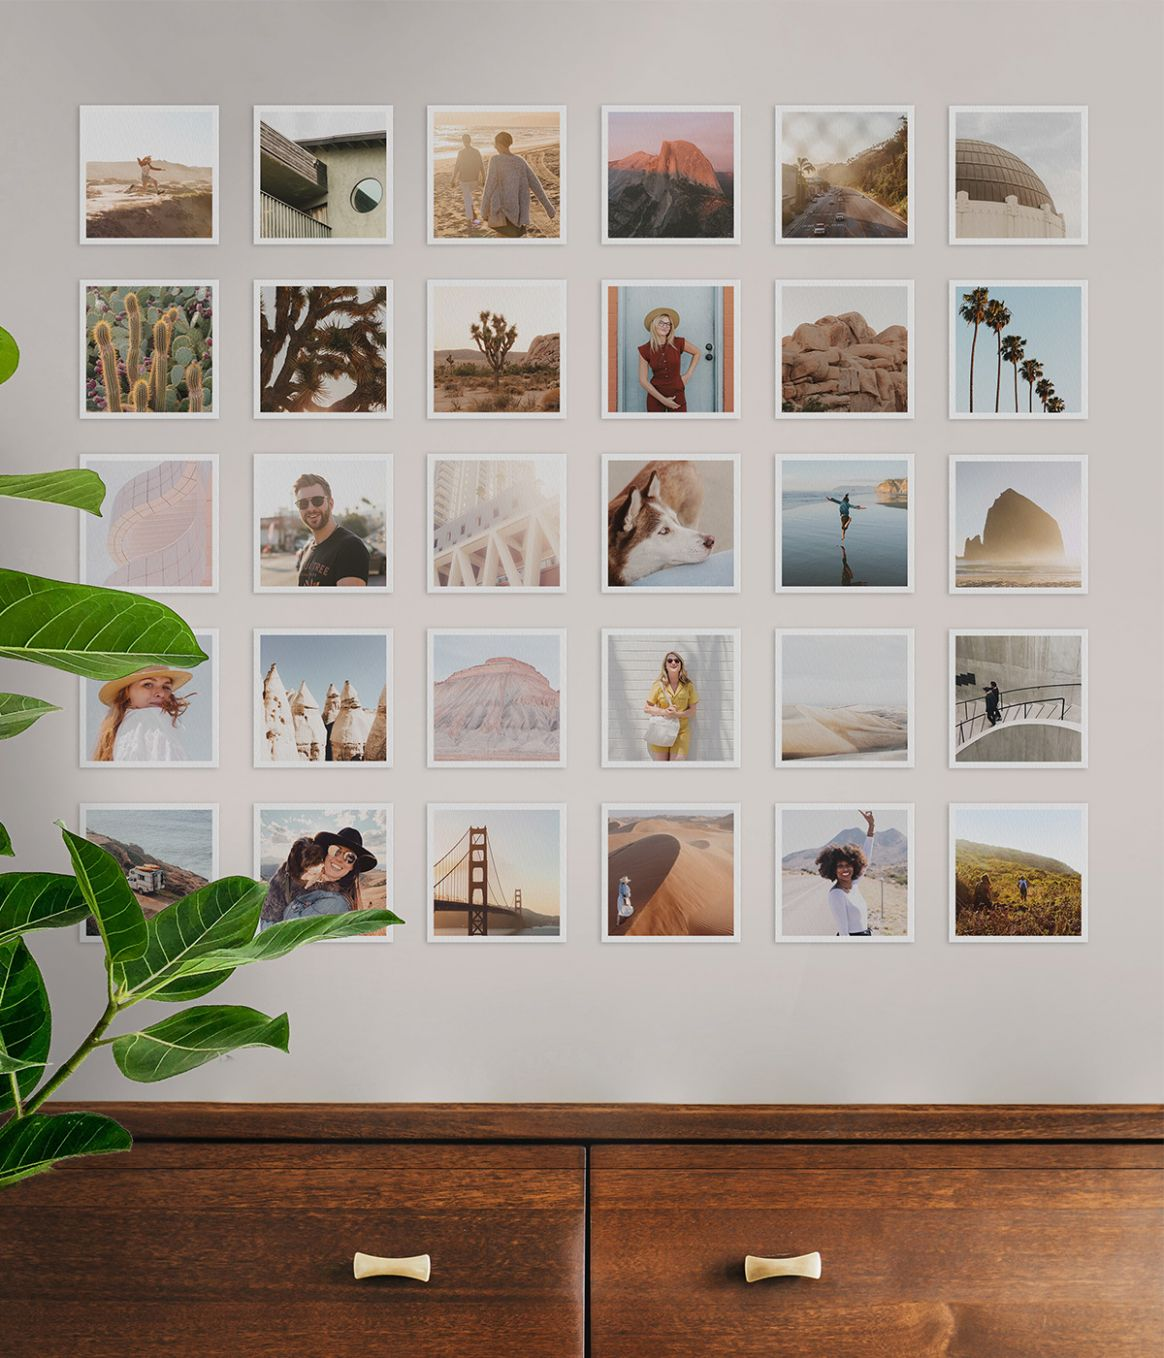 9 Wall Art Ideas to Personalize Your Space | Artifact Uprising - wall decor ideas picture frame